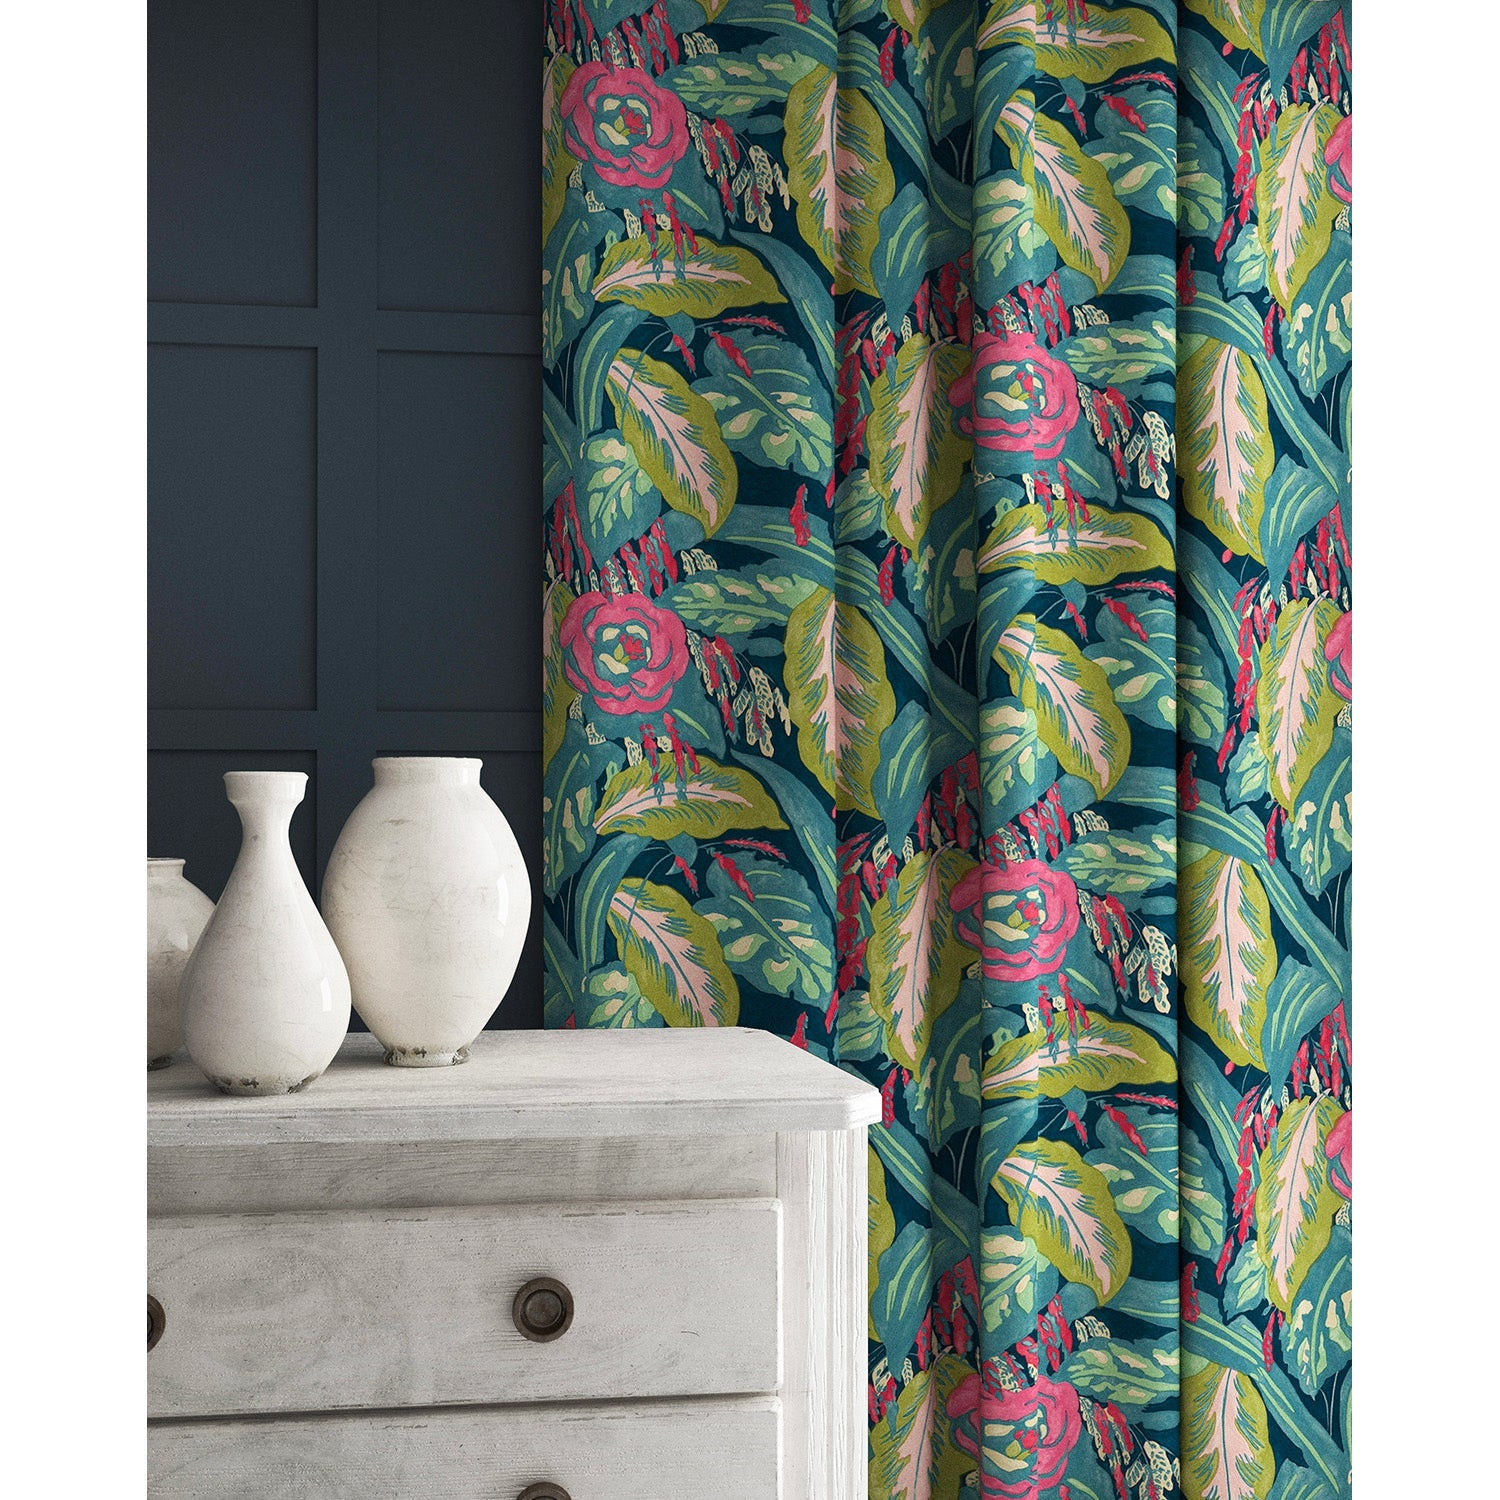 Velvet curtains in a pink and teal velvet floral fabric with a stain resistant finish